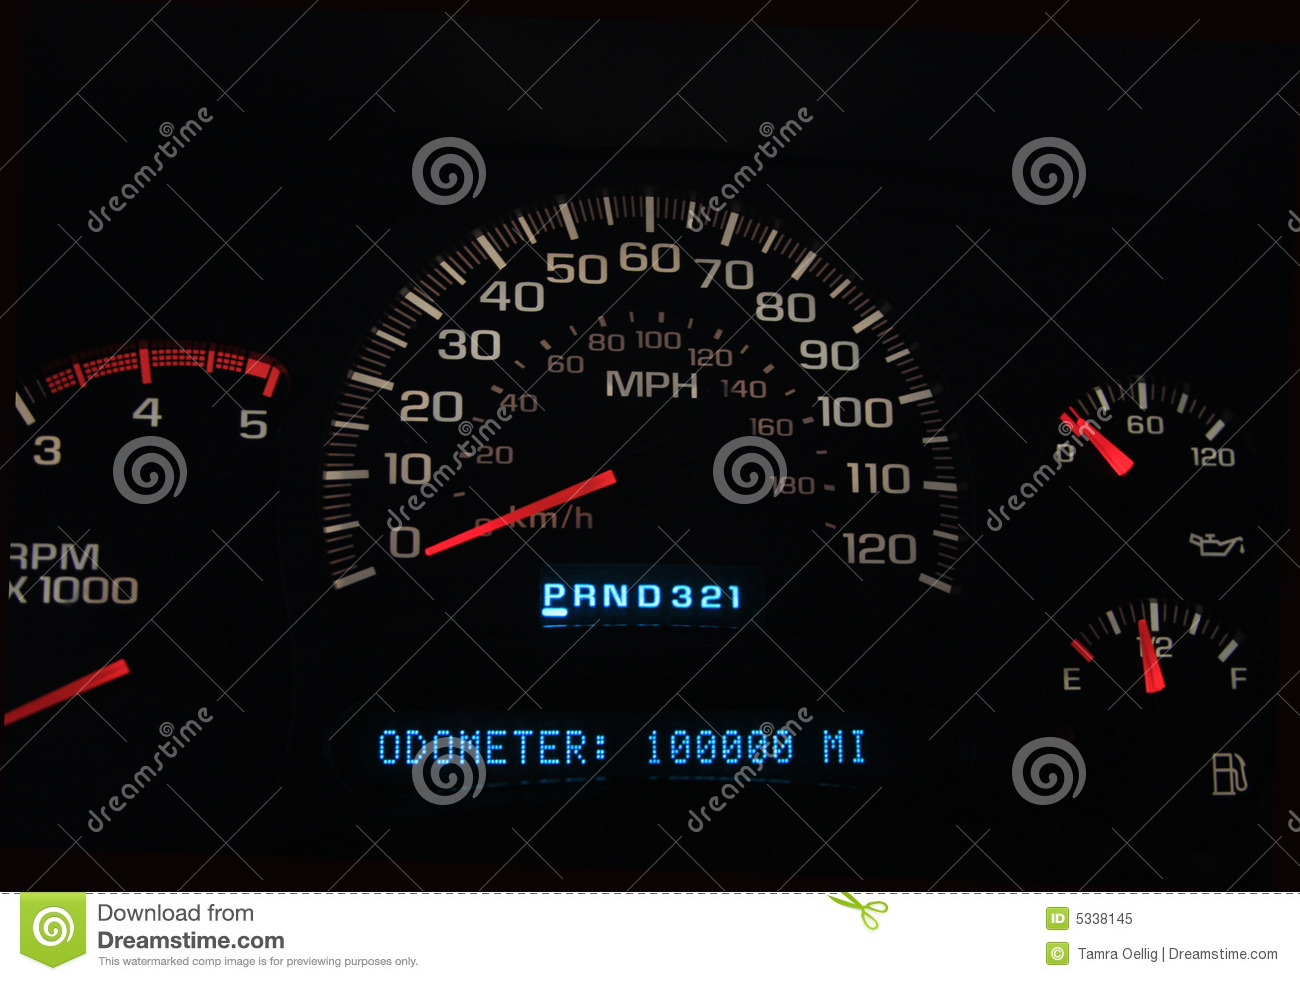 100,000 Miles Royalty Free Stock Photo  Image 5338145. Packet Sniffers Windows Dish Cartoon Channels. Reno Emergency Dentist Amtrak Moving Services. Virtual Phone System Comparison. Black Women And Fibroids Perment Hair Removal. Fort Myers Air Conditioning Que Es Six Sigma. Network Topology Creator Ndmp Backup Software. Child Psychology College Best Intel I5 Laptop. Best Web Page In The World Mileage Plus Gold